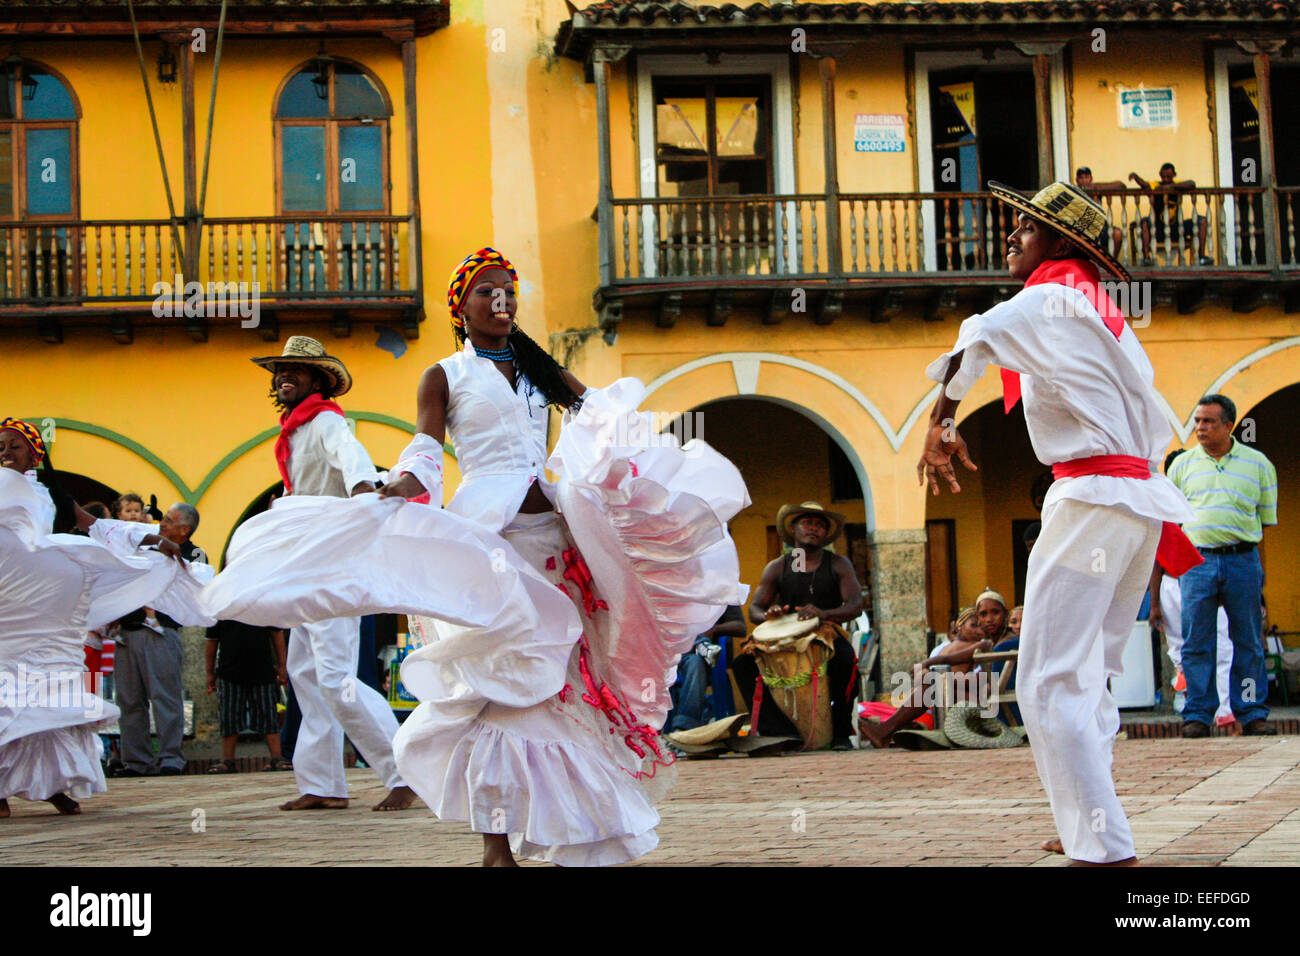 Traditional Colombian dancers performing in Cartagena's main square in the Old Town, Colombia - Stock Image